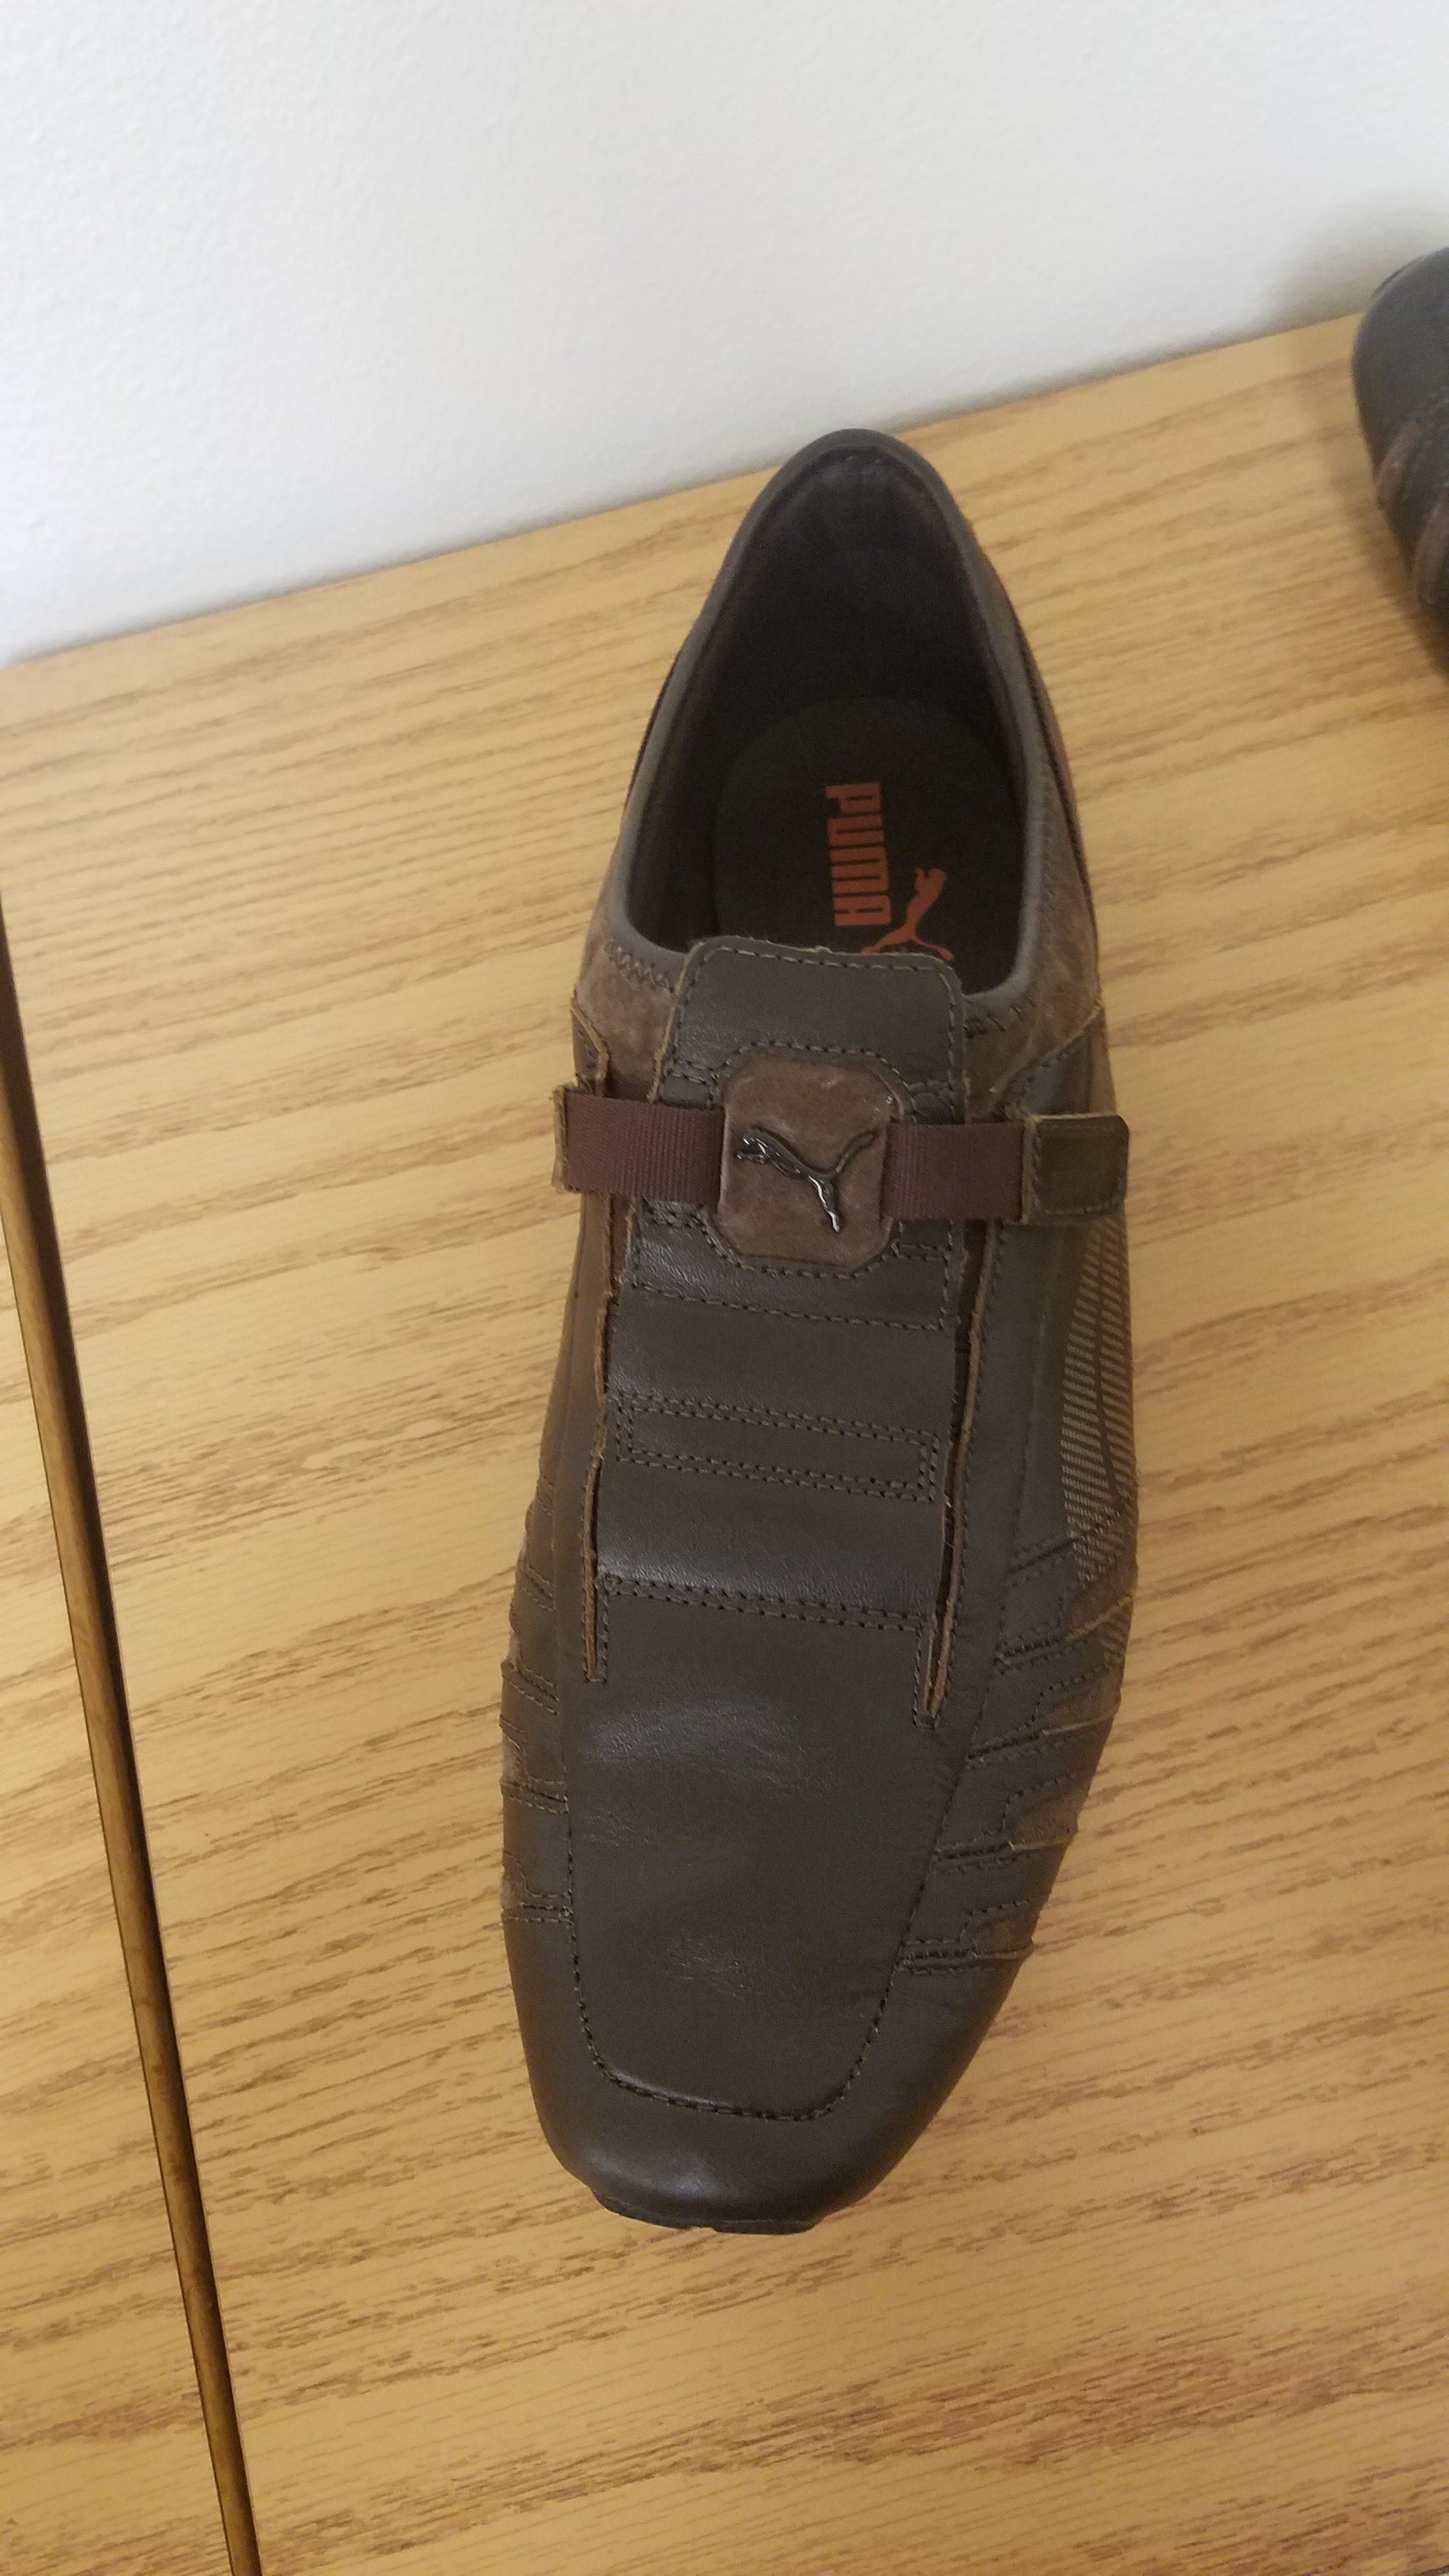 6ae2bc759ad7 PUMA Men s Vedano Leather Slip-On Shoe is being swapped online for free